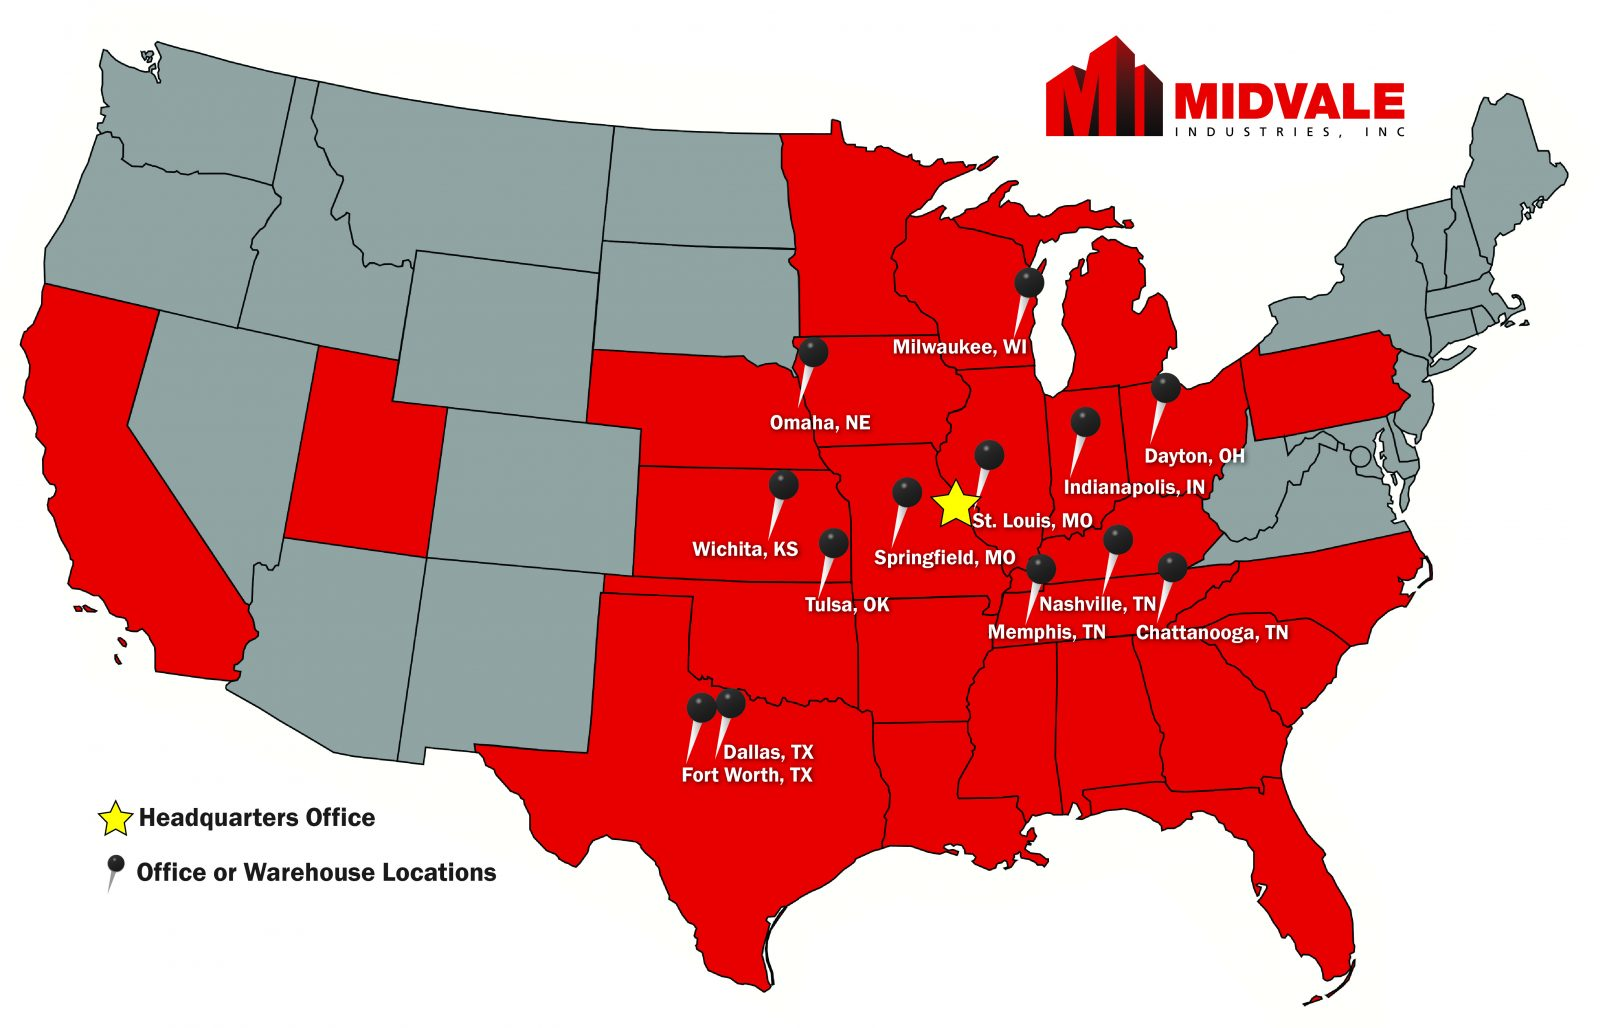 midvale industries location map